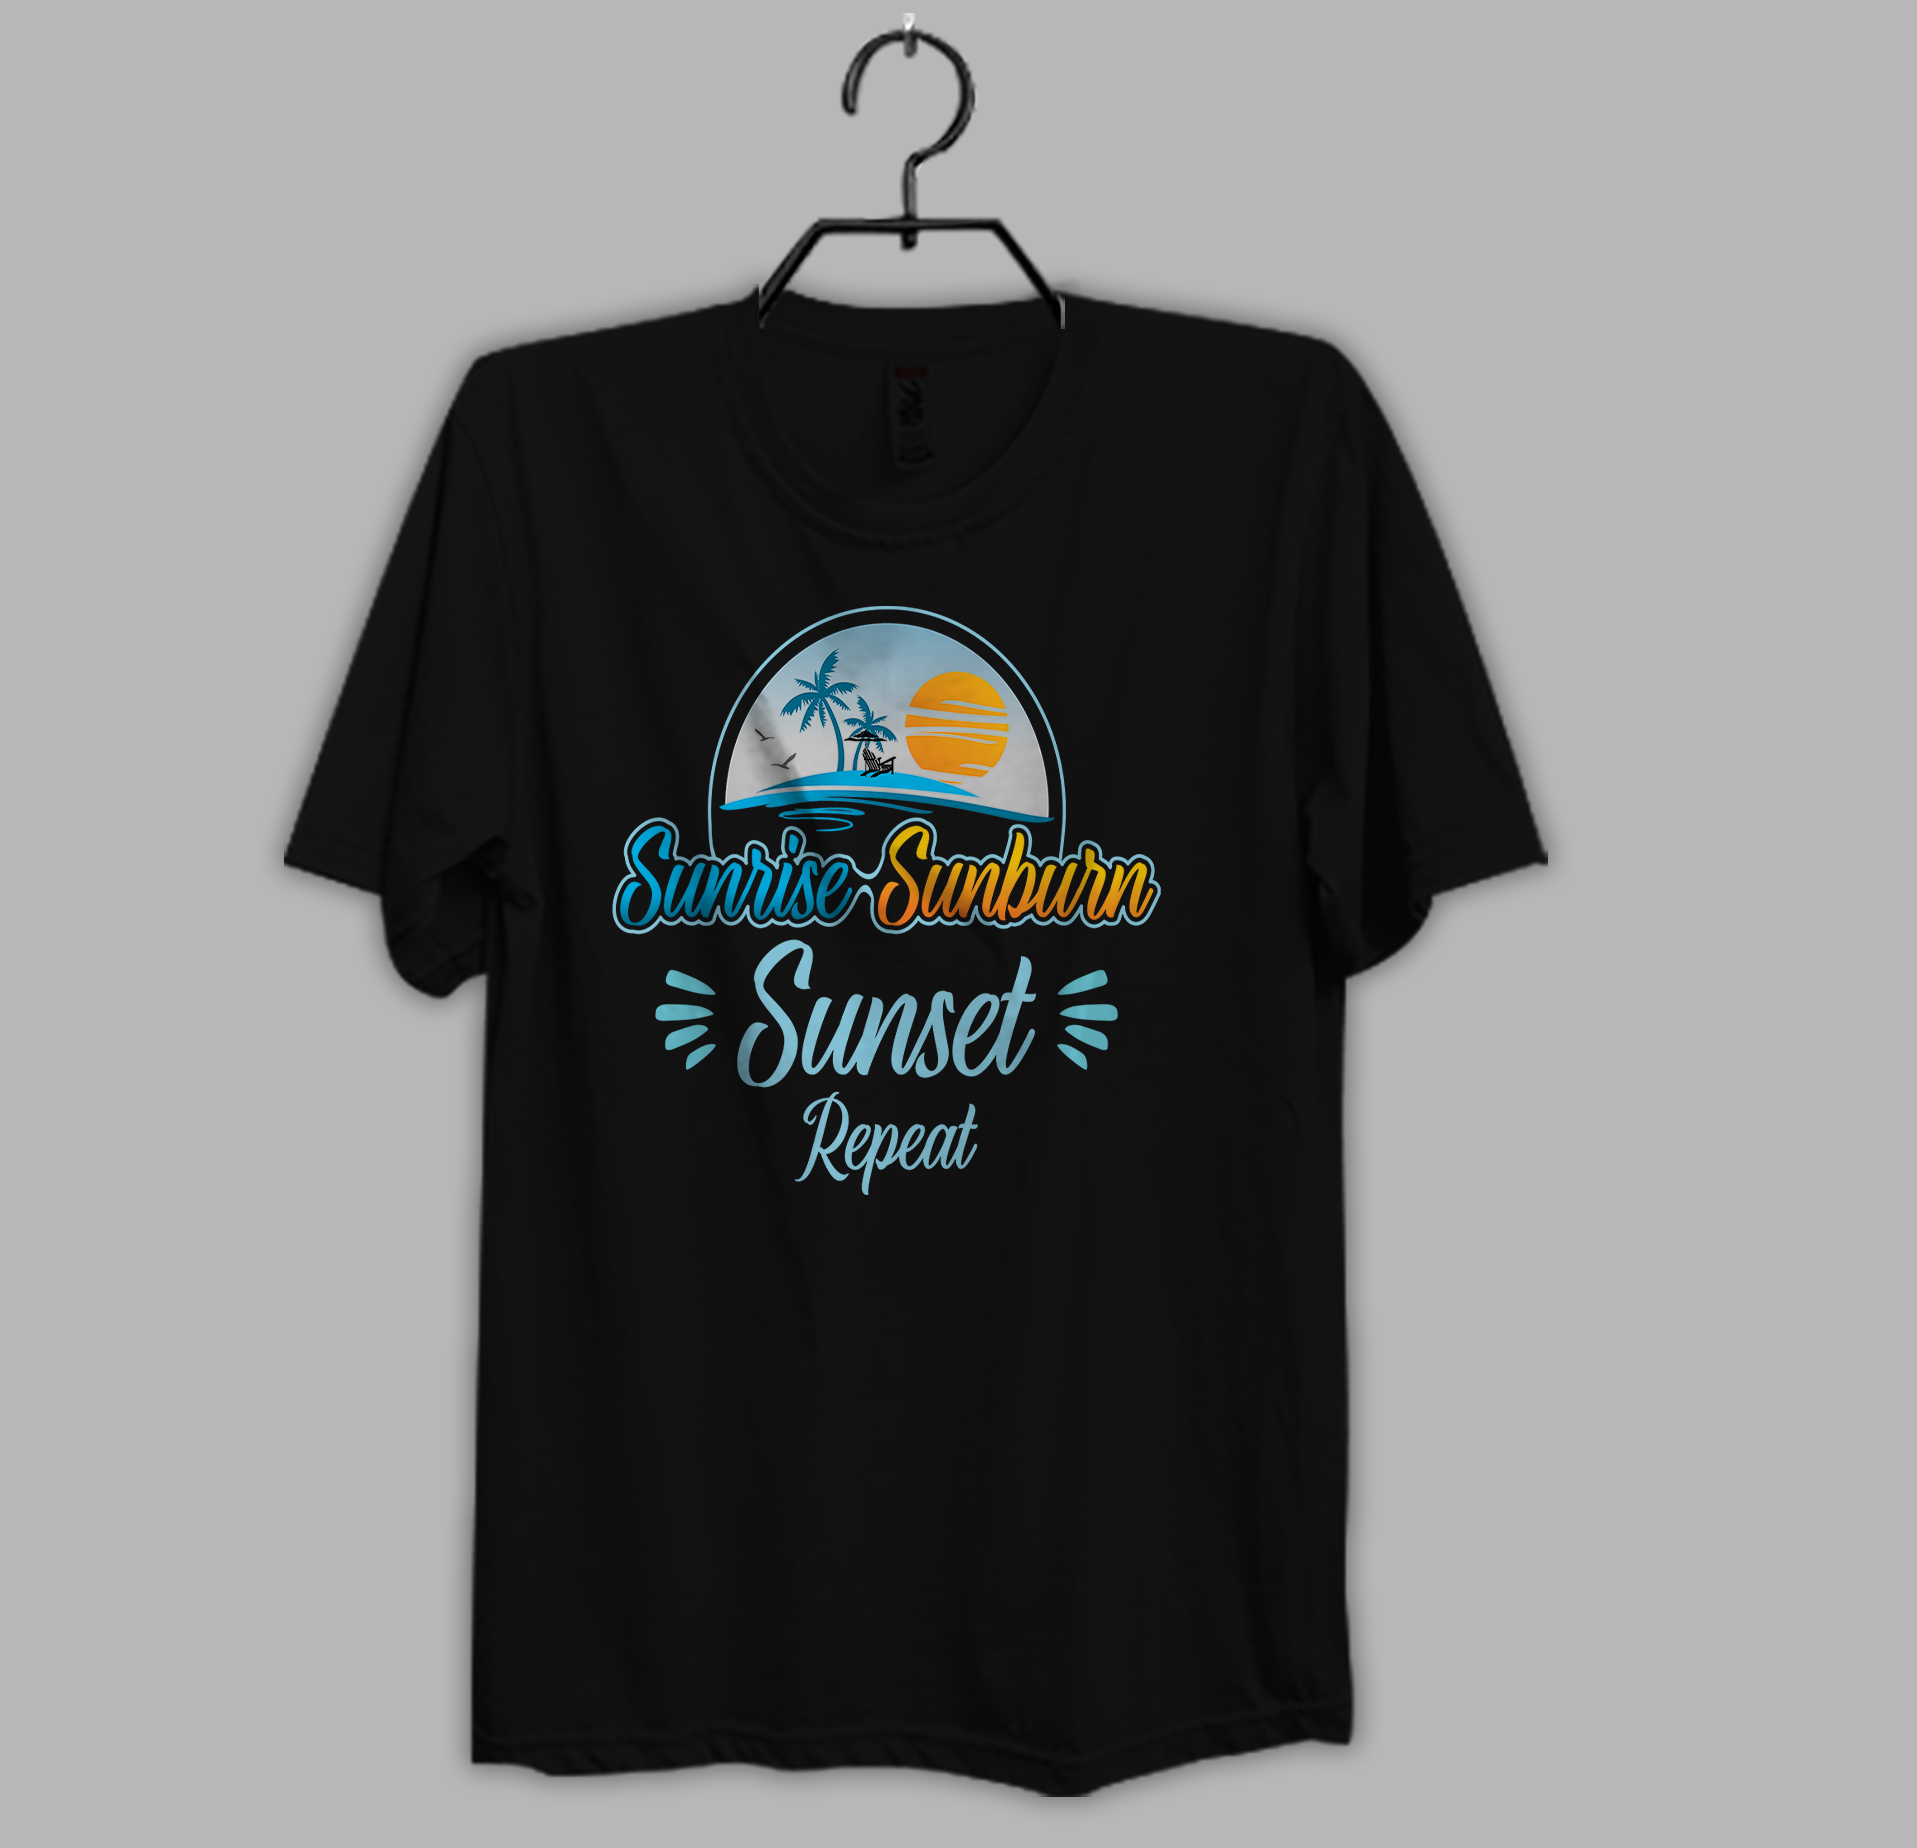 I Will Do High Quality T-Shirt Designs For Your Online Store